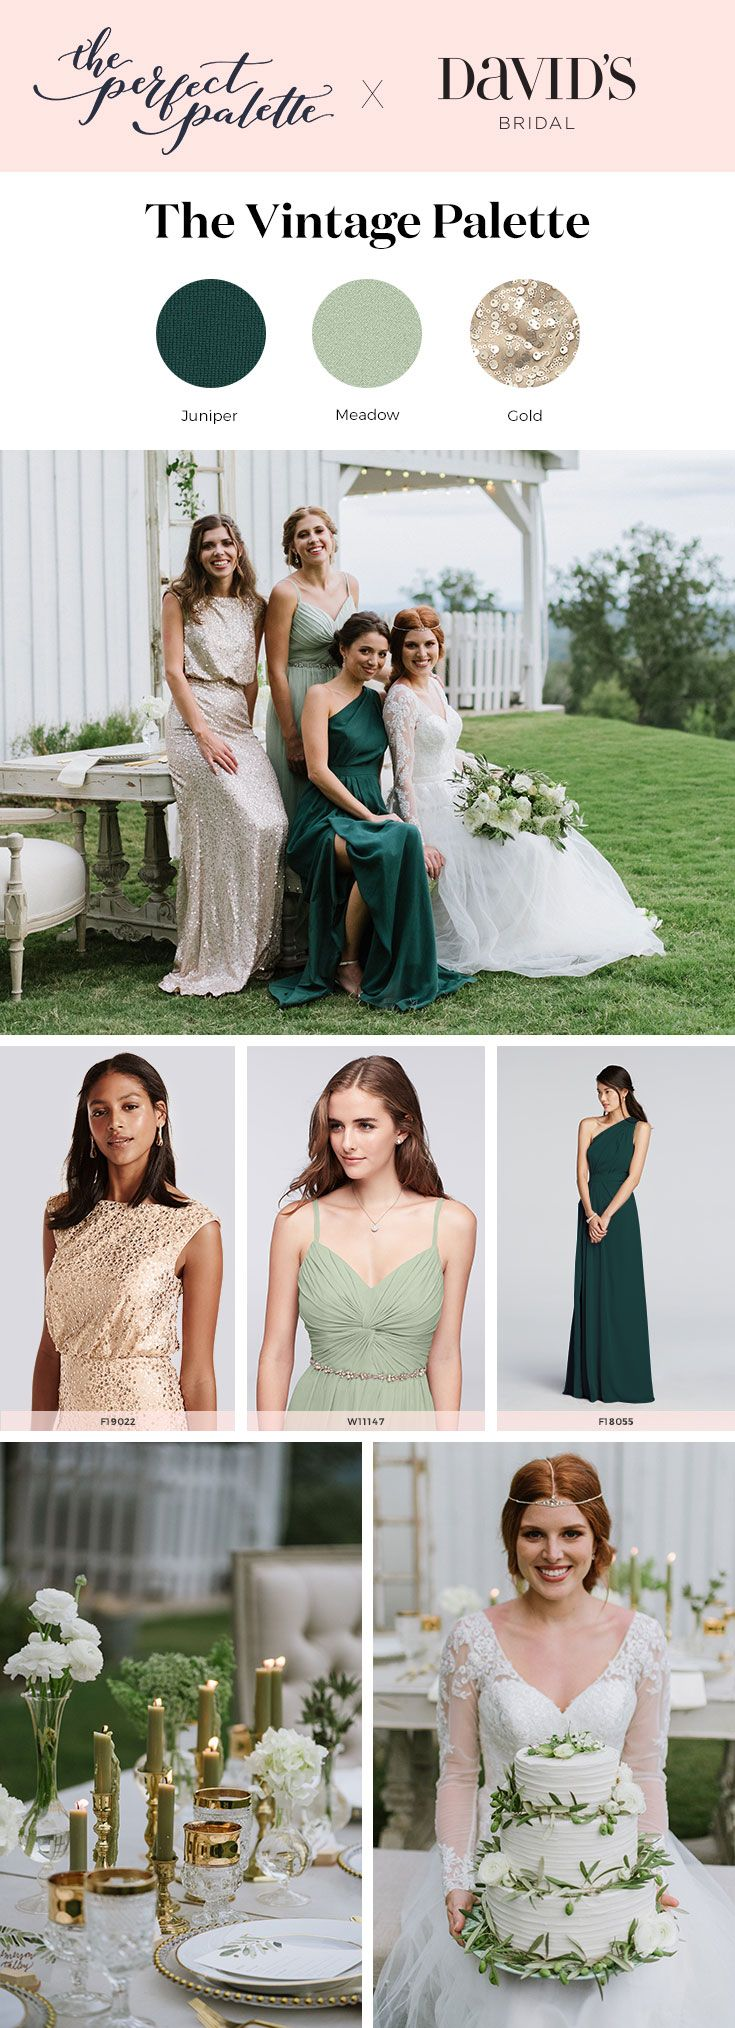 943 best bridesmaid dresses images on pinterest flower girls at davids bridal its easy to coordinate your whole wedding day from bridesmaid dresses to decorations ombrellifo Images